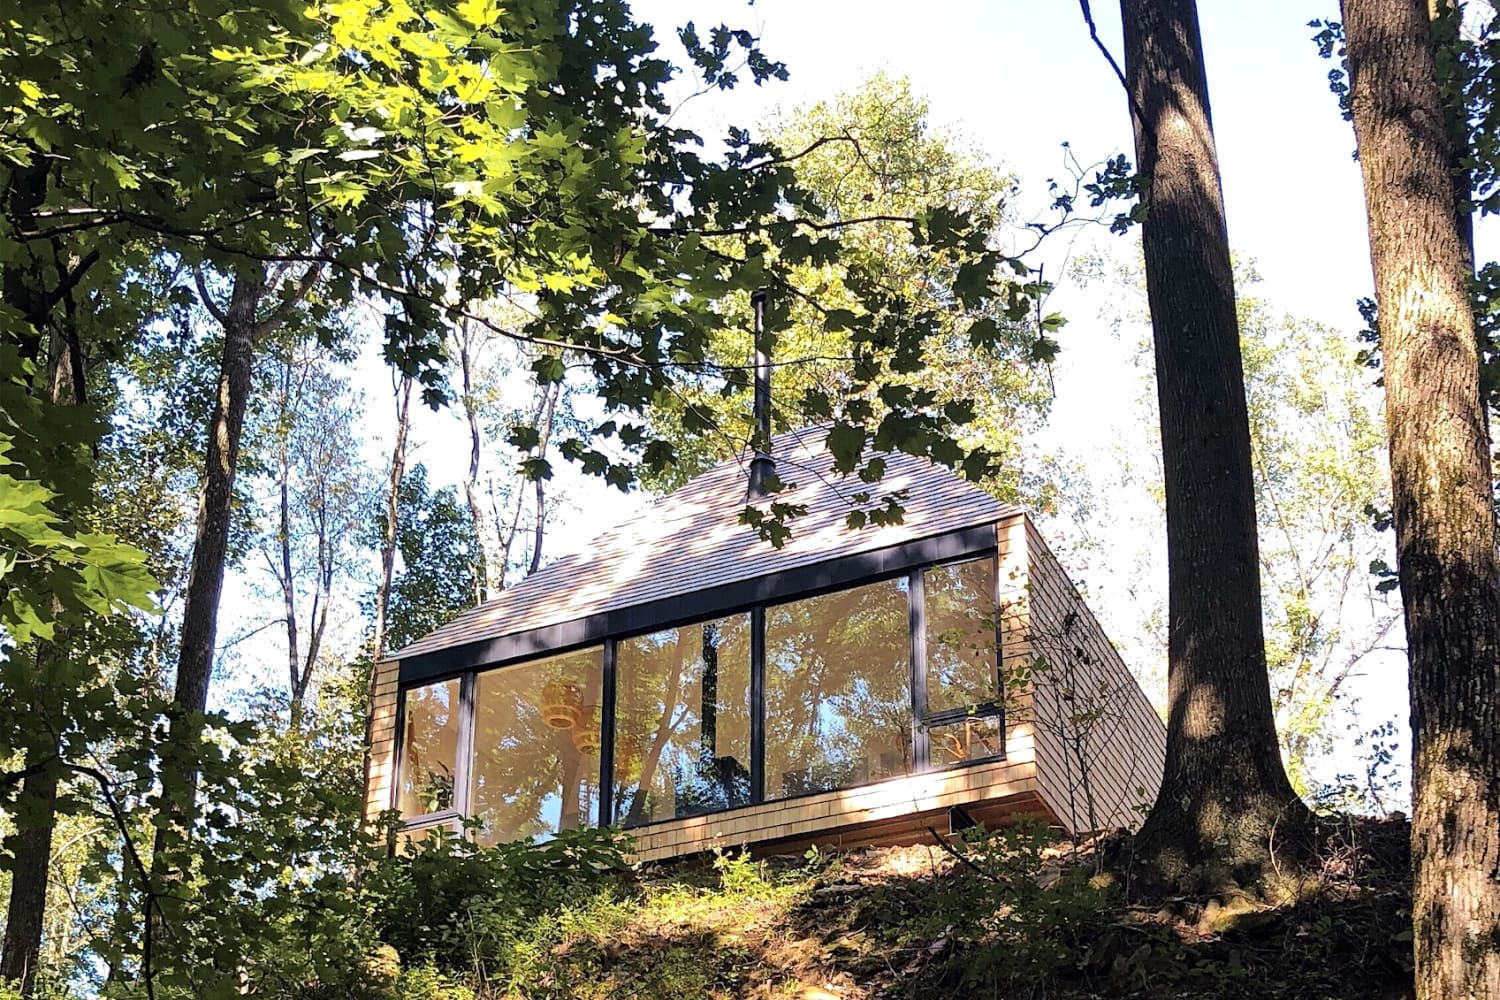 This 650-Square-Foot Family Home in Ohio Is Off-Grid 'Country Minimalism'